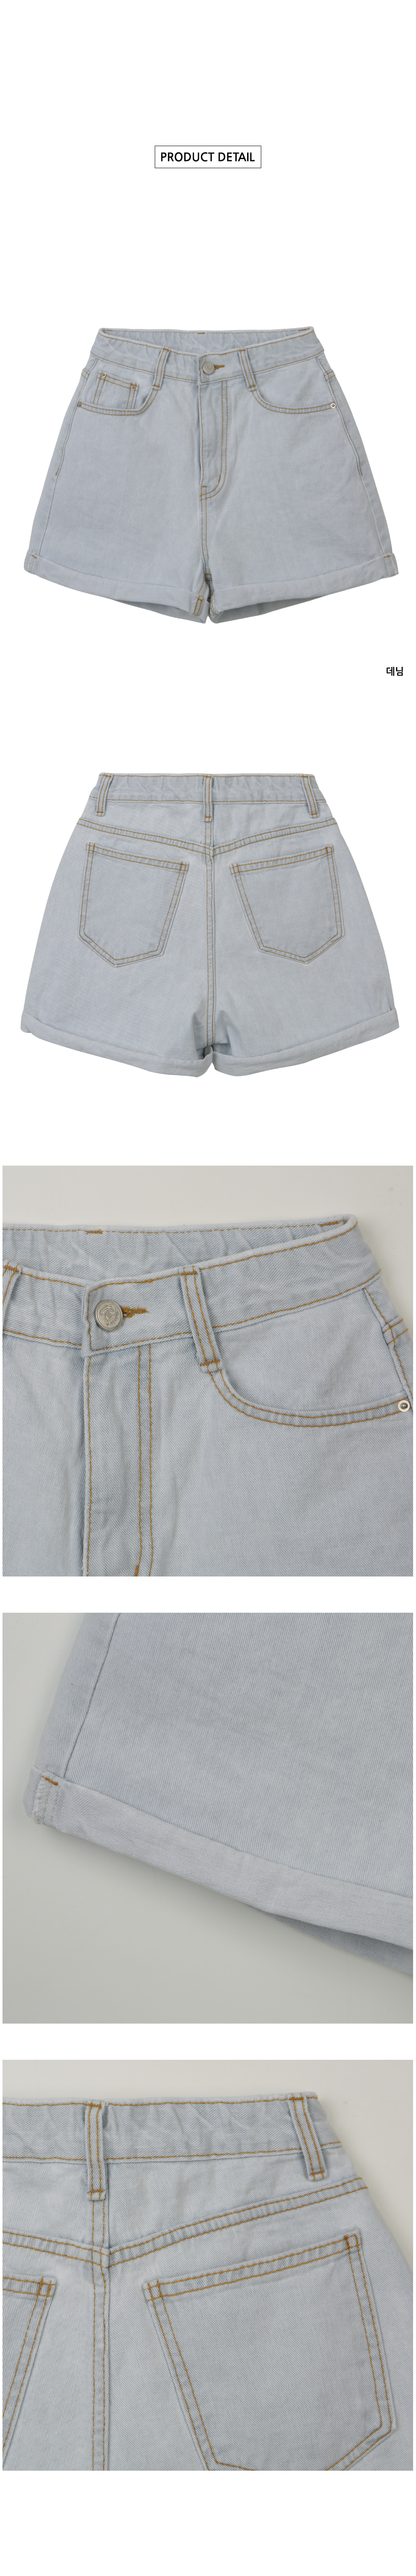 Fit Pretty Roll Up Short Pants P#YW444